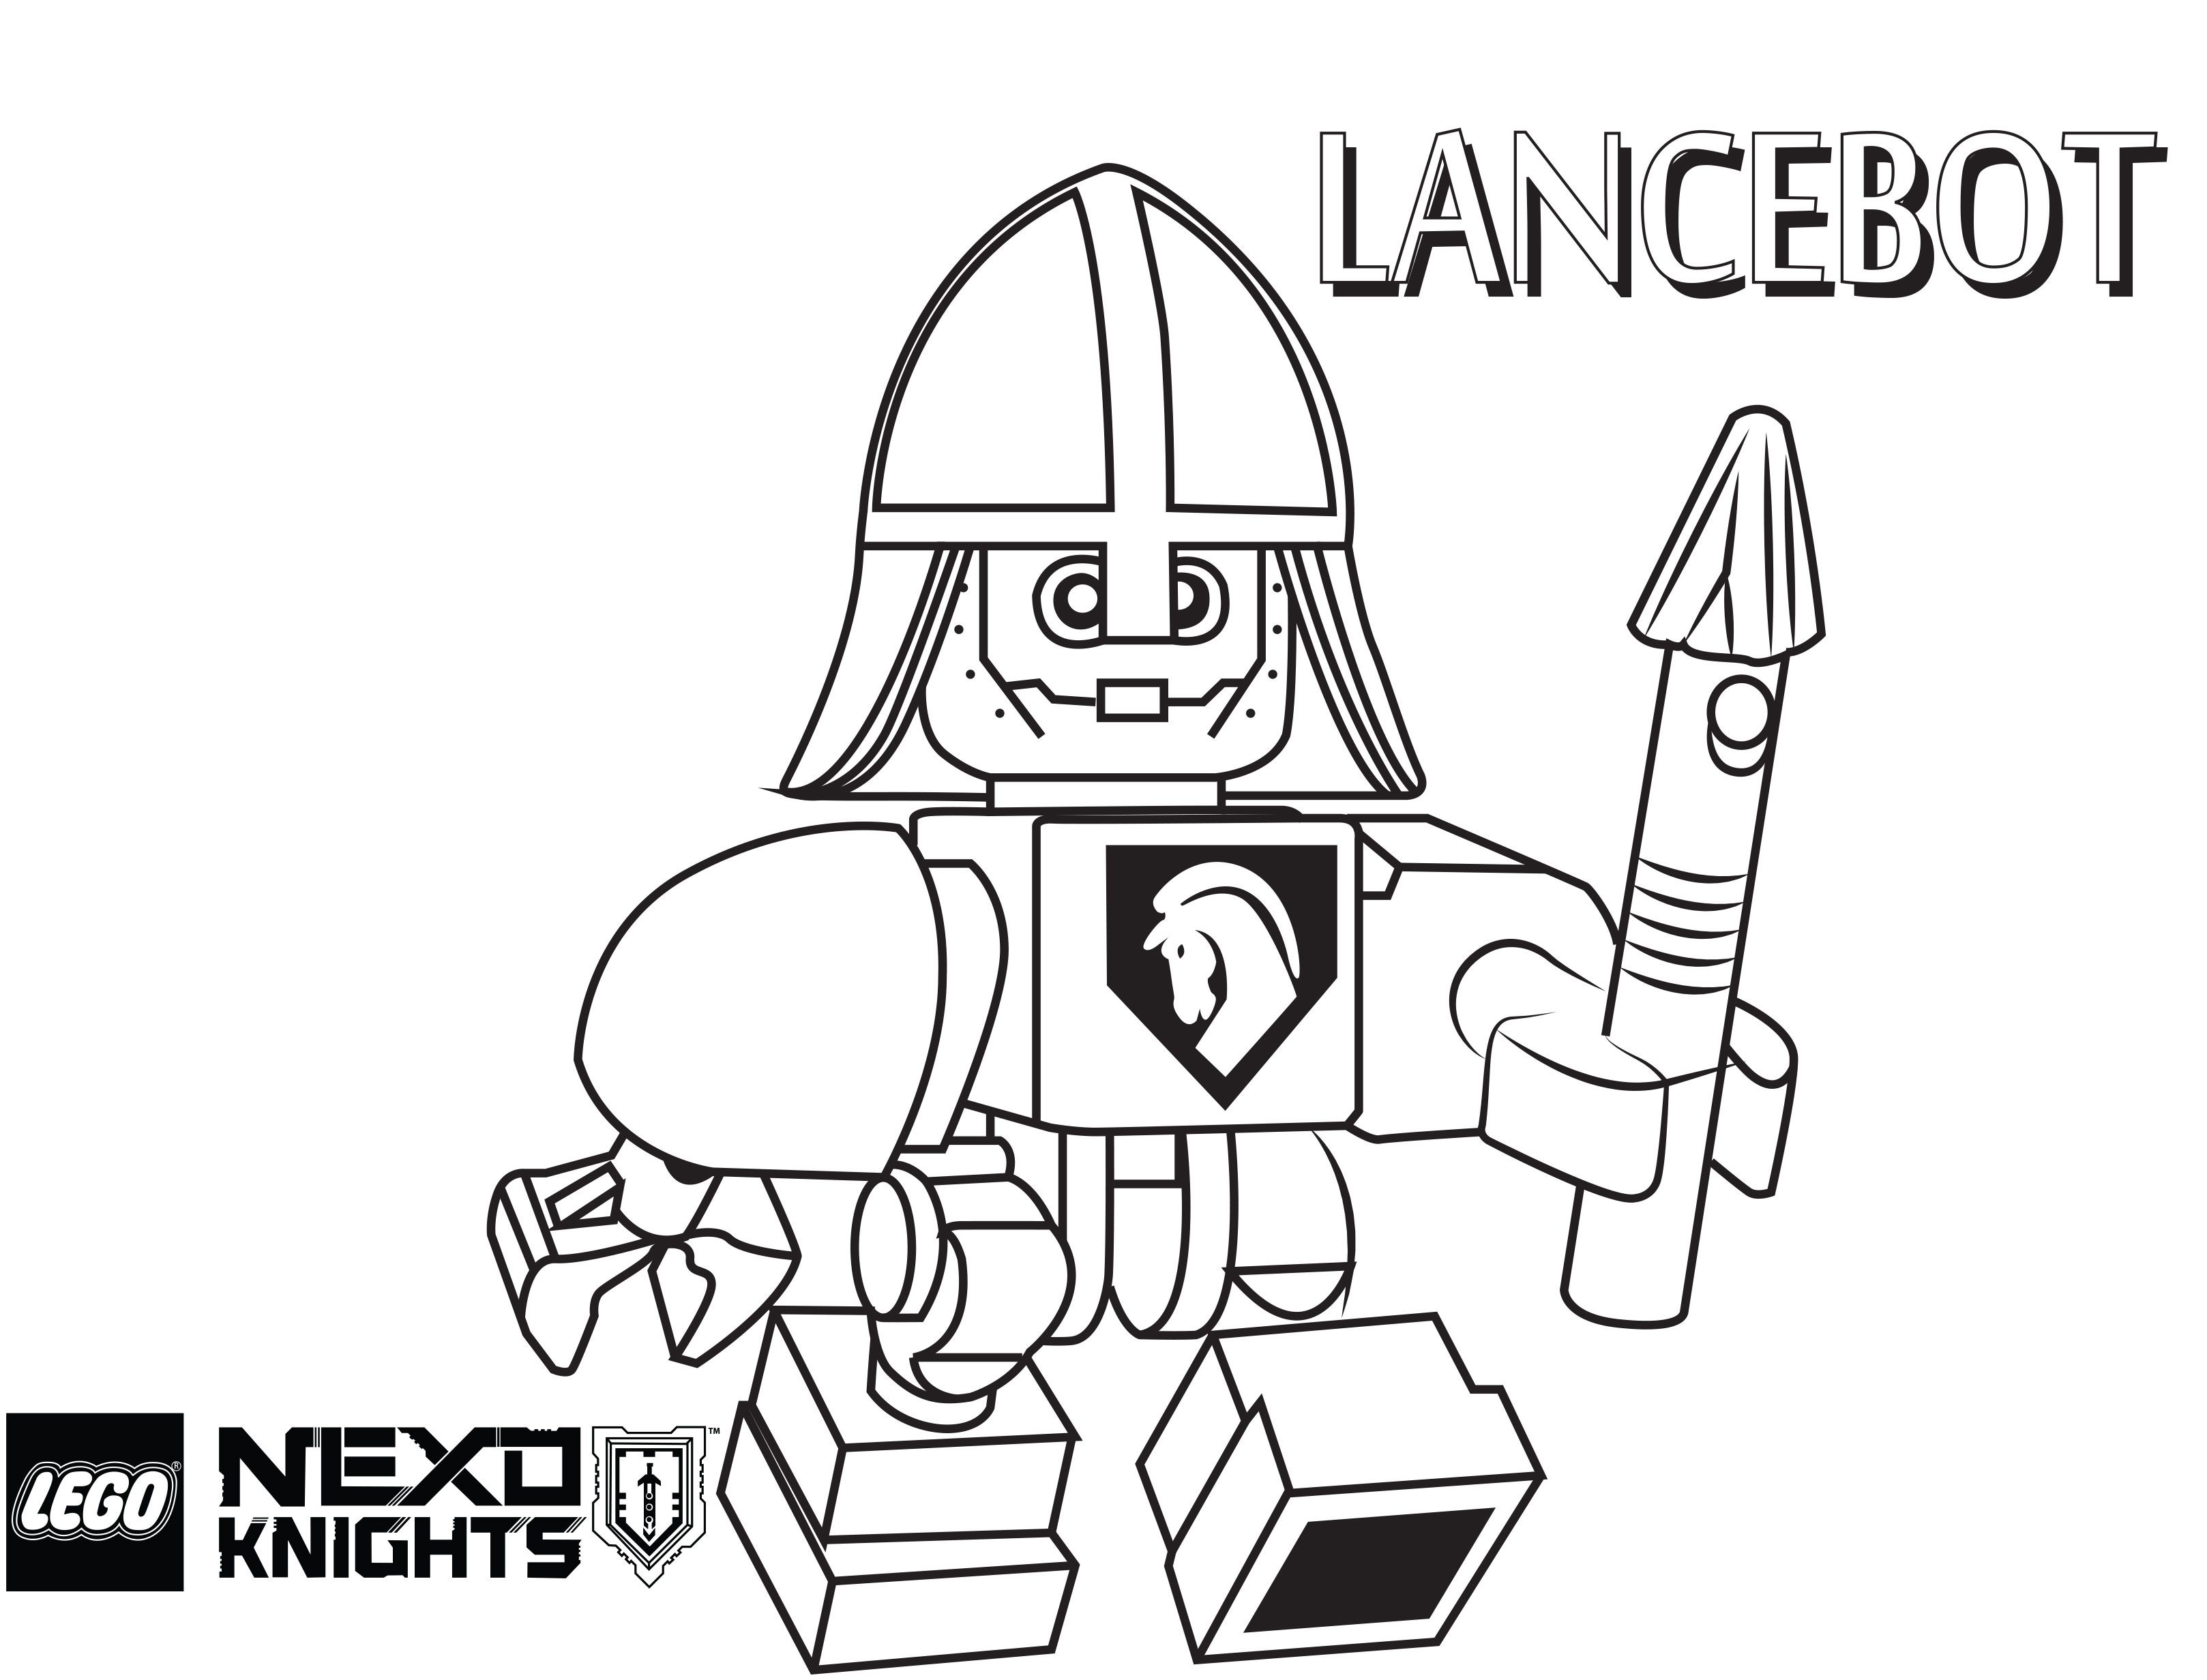 Lego Nexo Knights Coloring Pages Free Printable Lego Nexo Knights